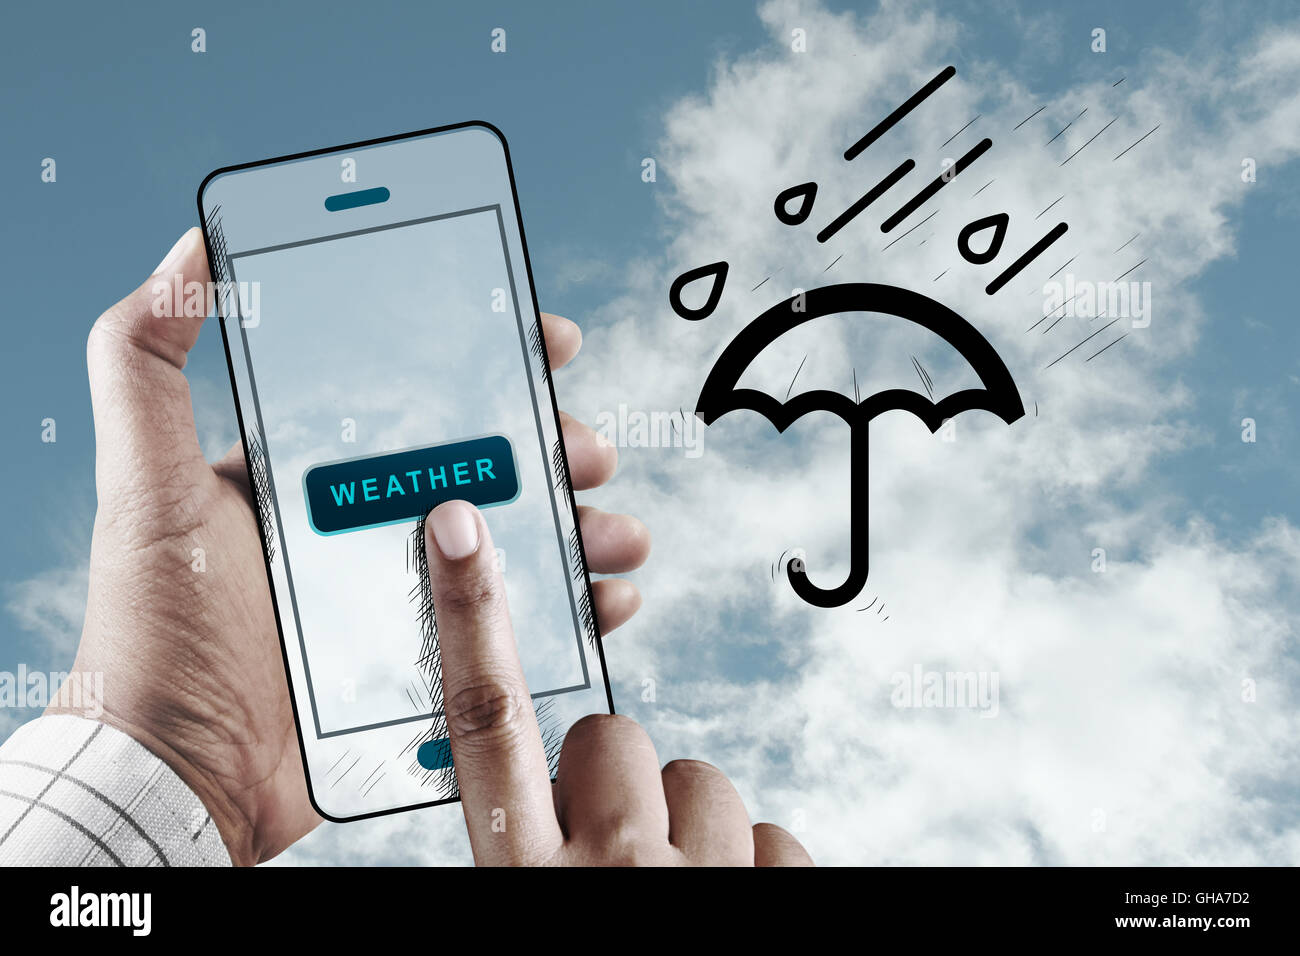 Hand Using Mobile to Check Weather, Mobile Performance Concept, Weather Icon - Stock Image